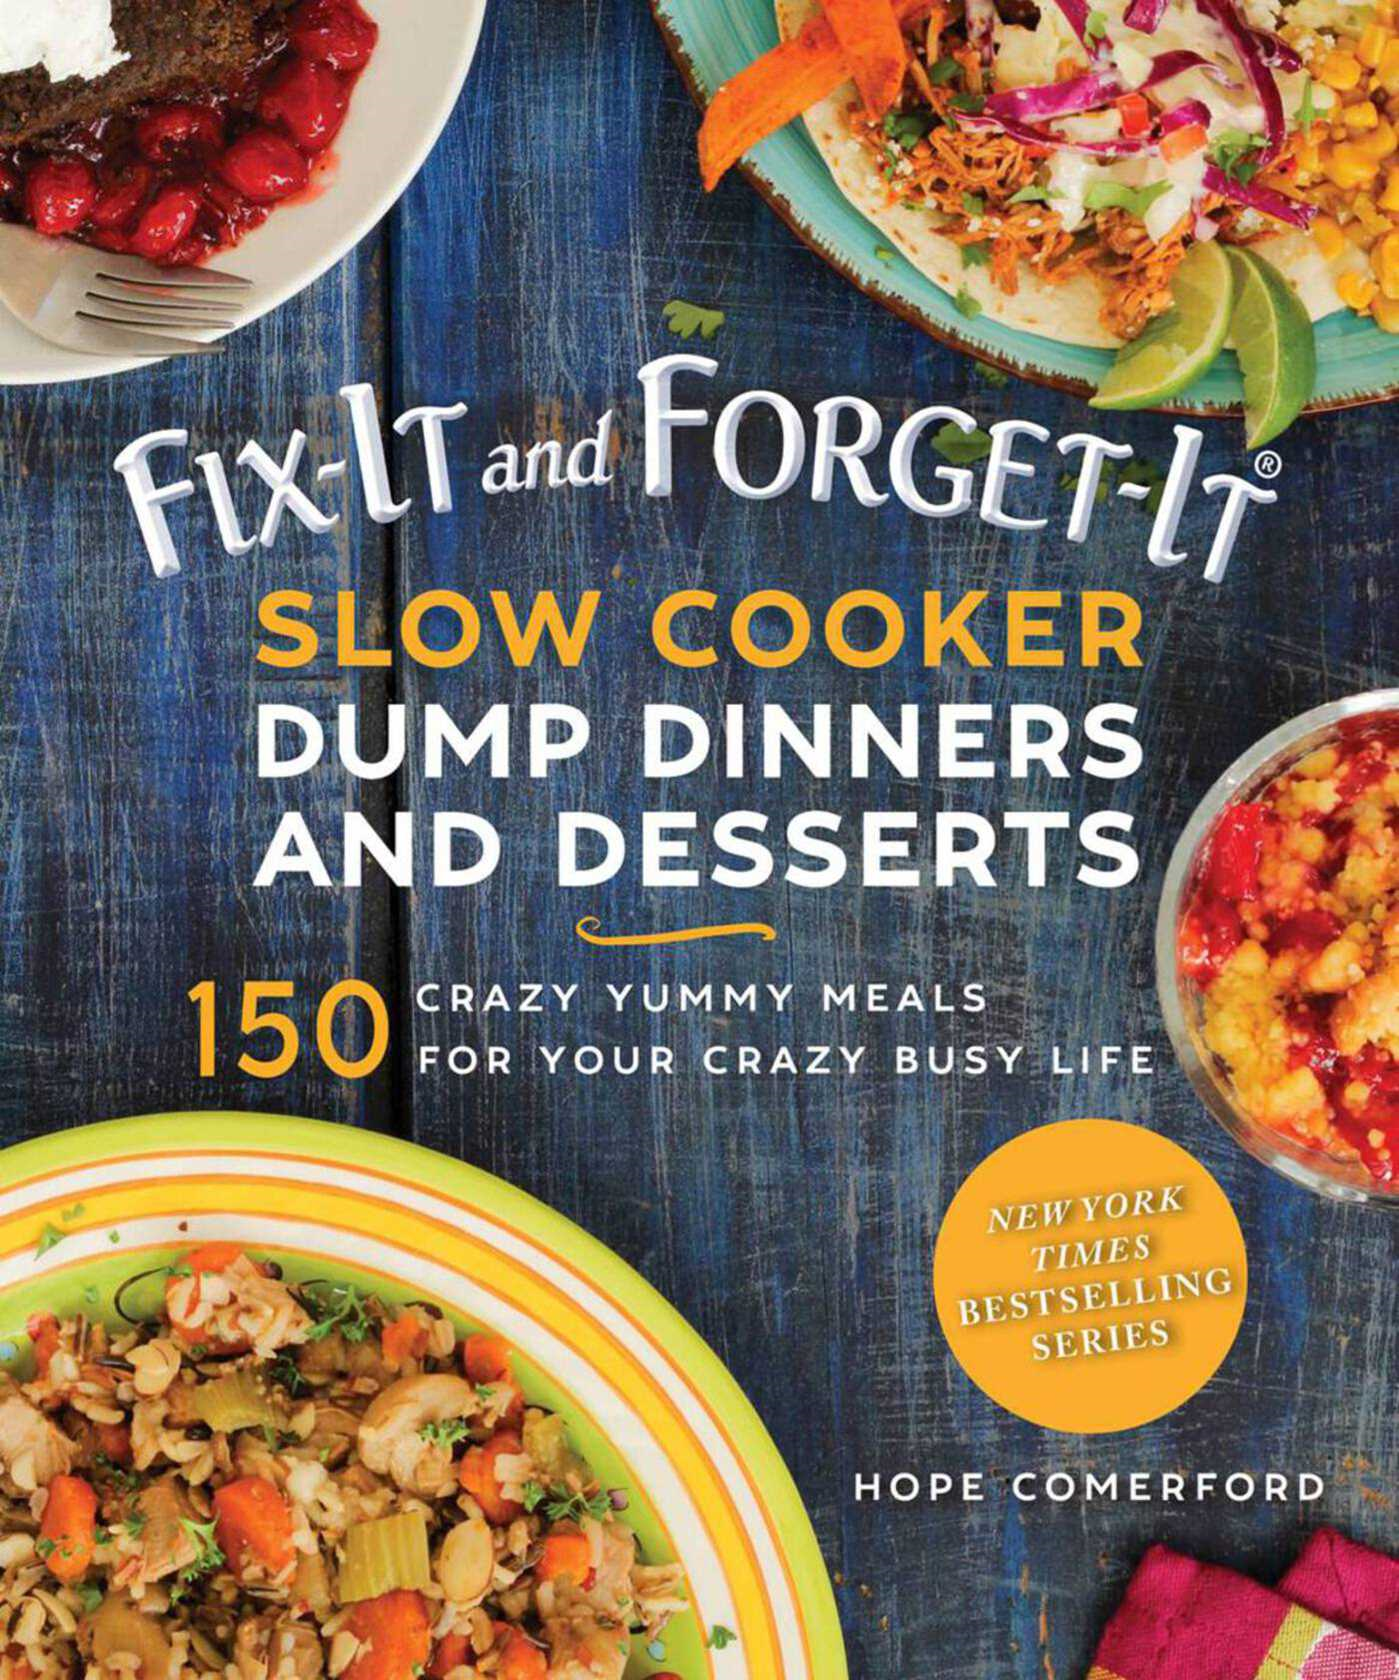 Fix-It and Forget-It Slow Cooker Dump Dinners and Desserts